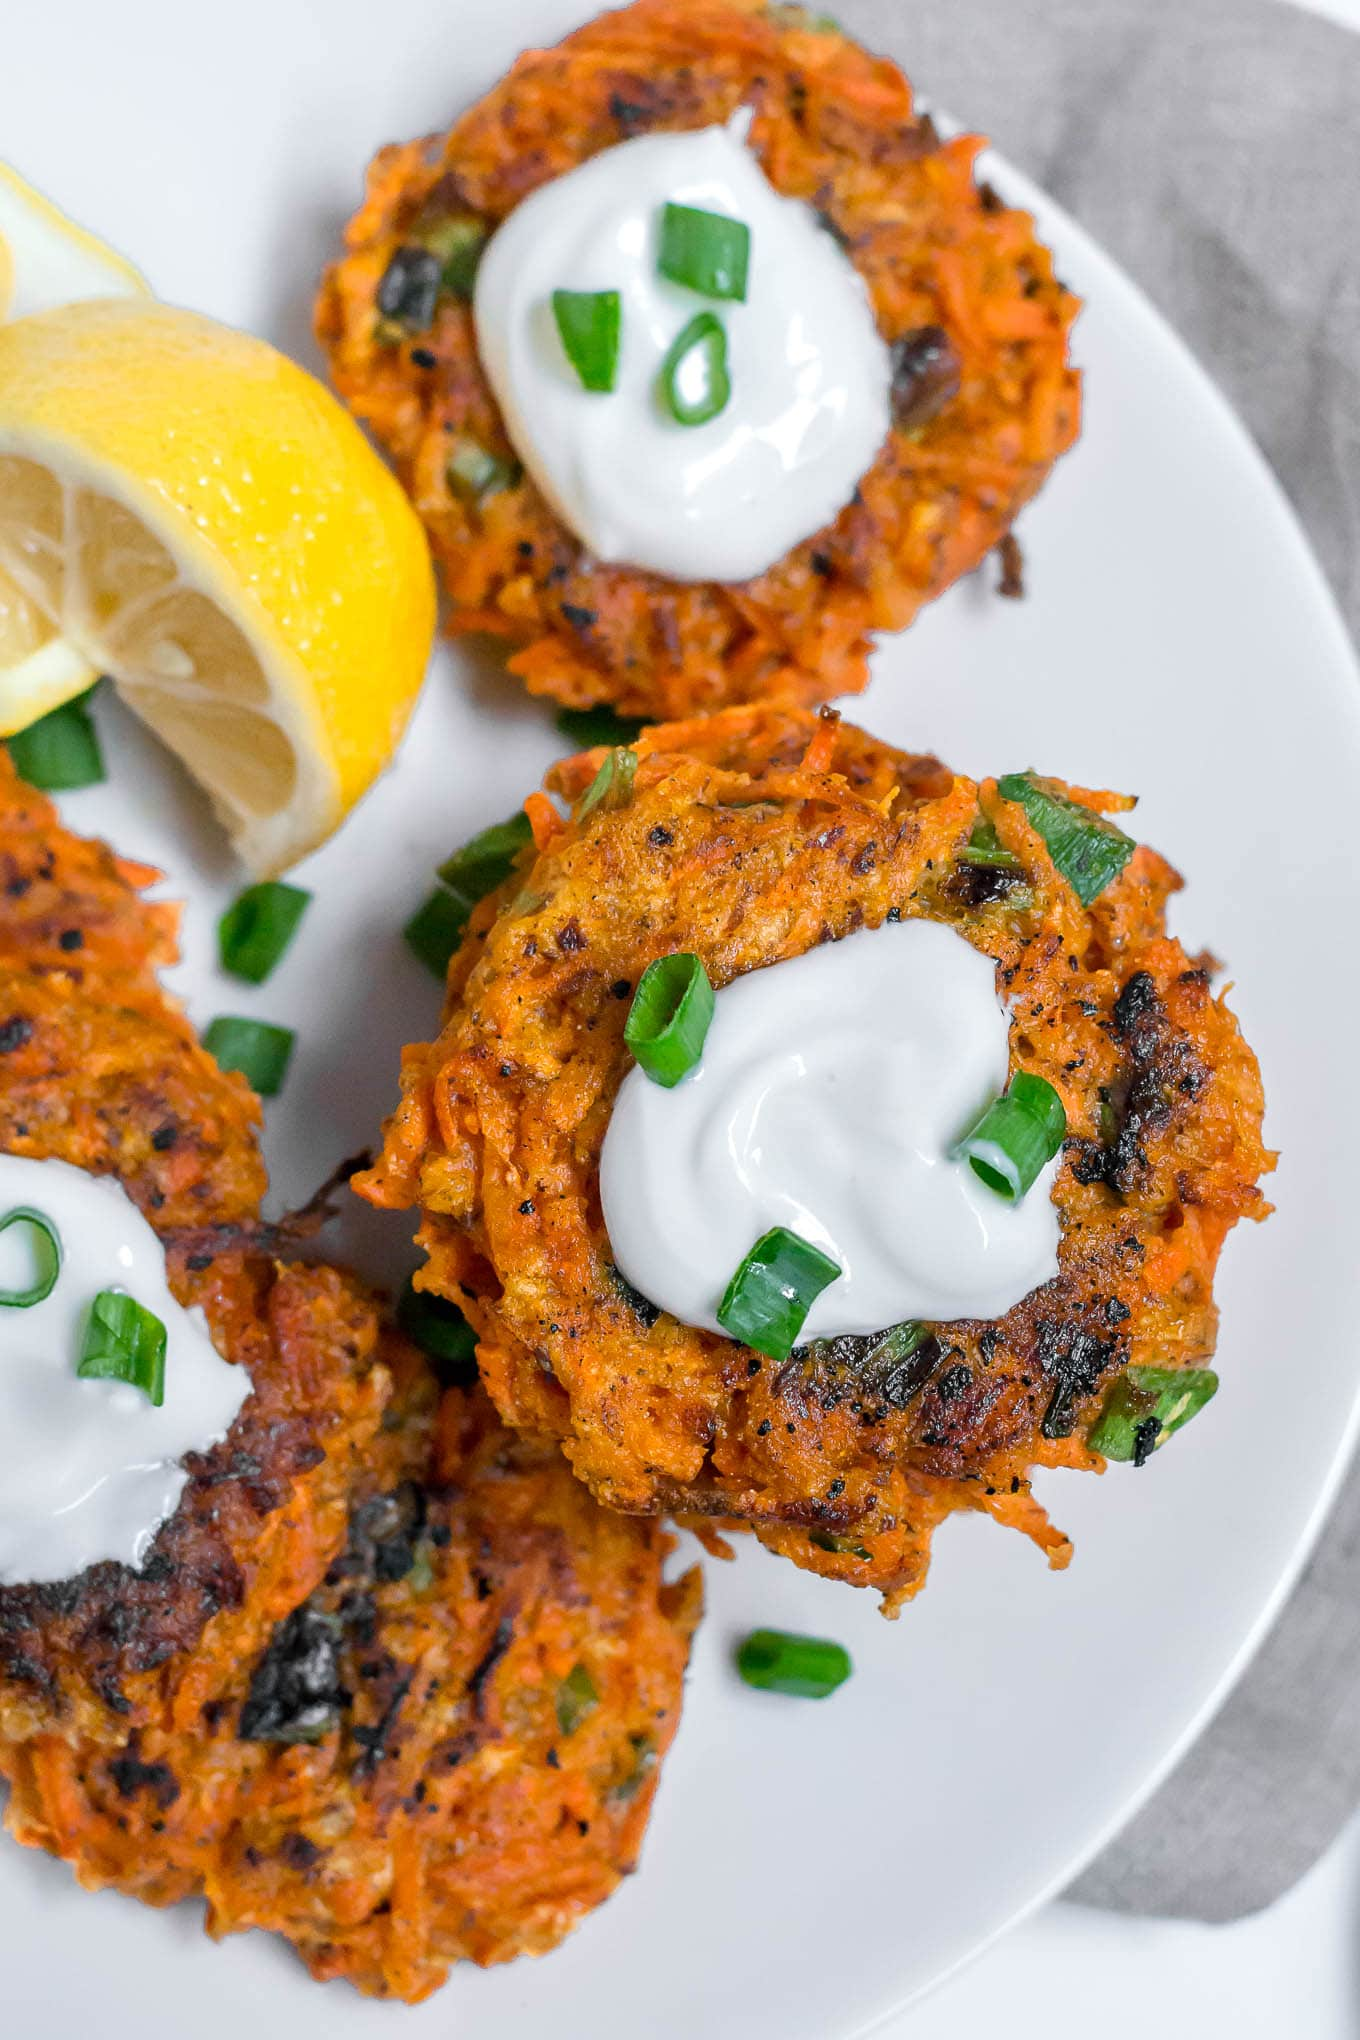 An aerial view of gluten-free carrot fritters on a white plate topped with greek yogurt, and green onions with a lemon wedge.